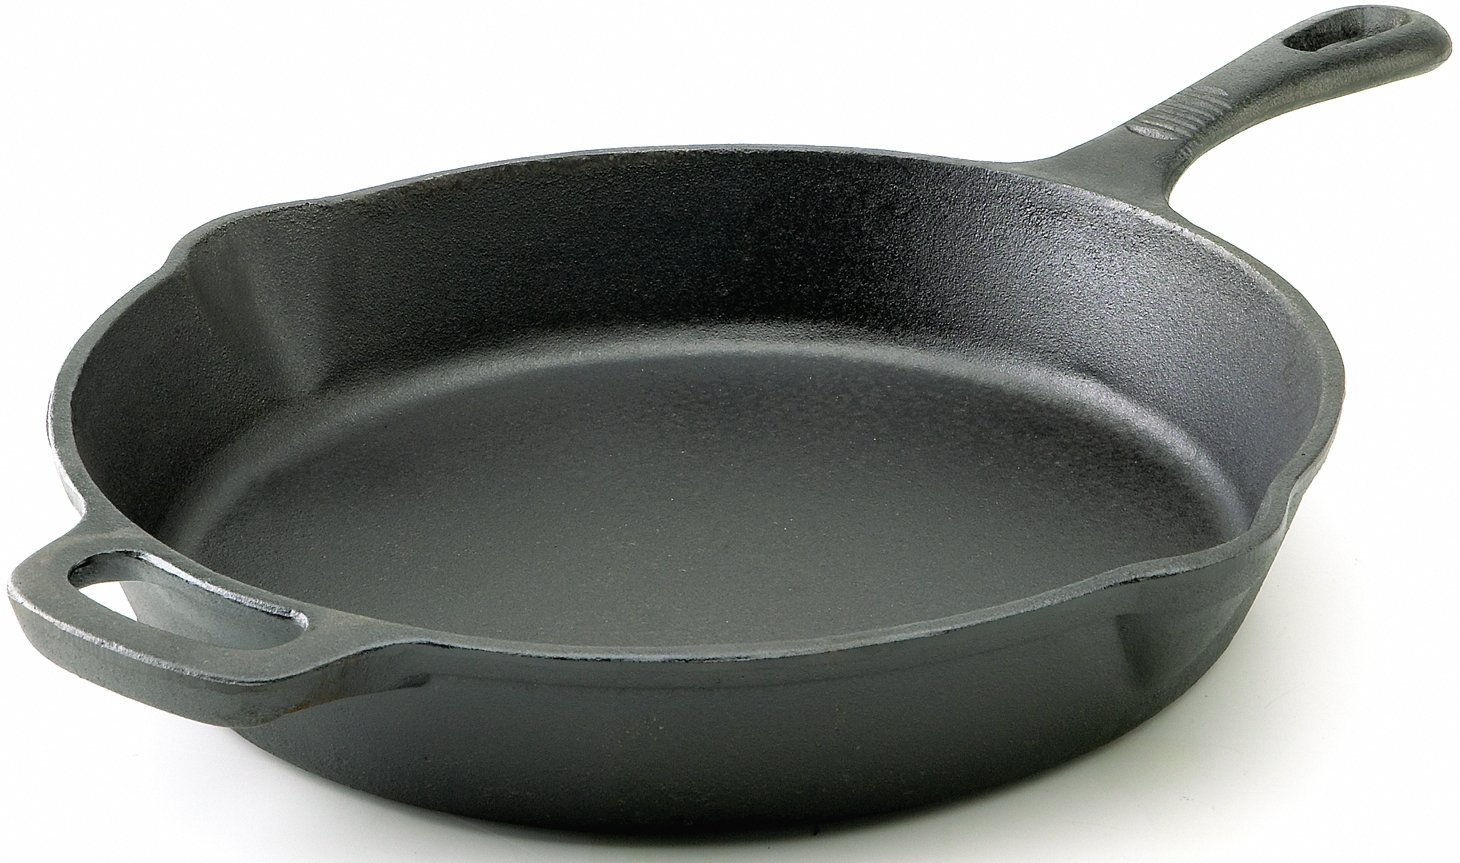 T-fal Pre-Seasoned Cast Iron Skillet